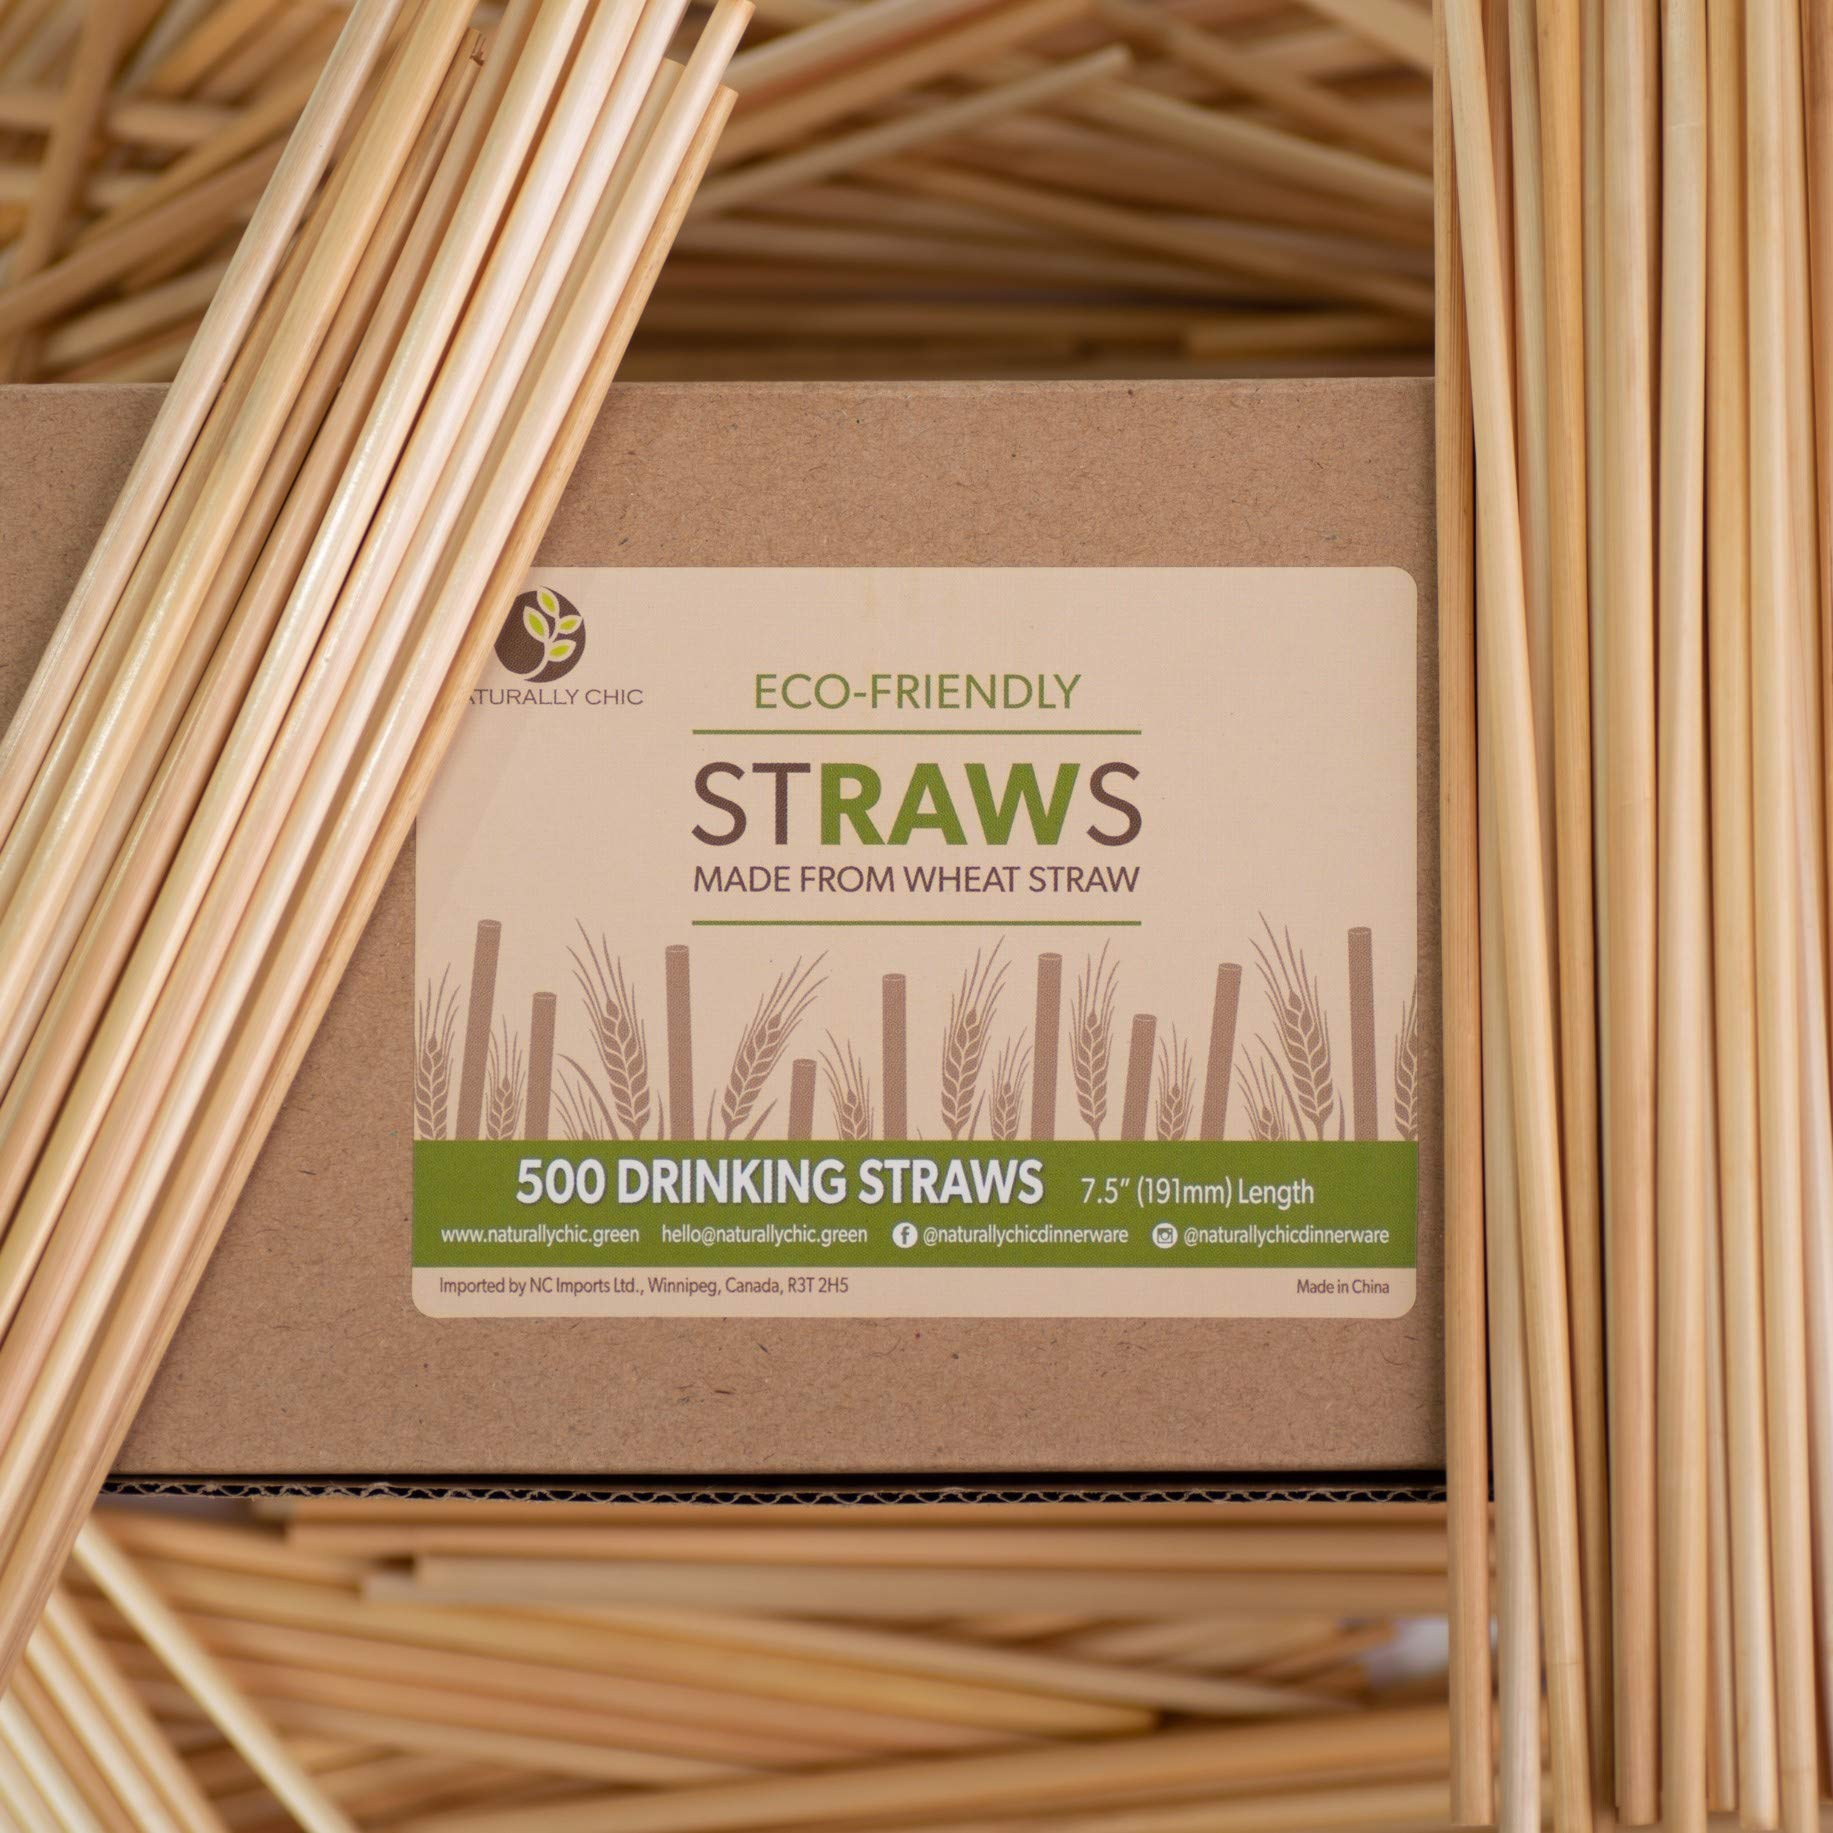 Naturally Chic Biodegradable Wheat Straws | 7.5 Inch Long Unwrapped Drinking Straws Made of Wheat Hay (Gluten Free) - Eco Friendly - Coffee, Restaurant, Bar, Party Bulk Straws - (1000 Pack) by Naturally Chic